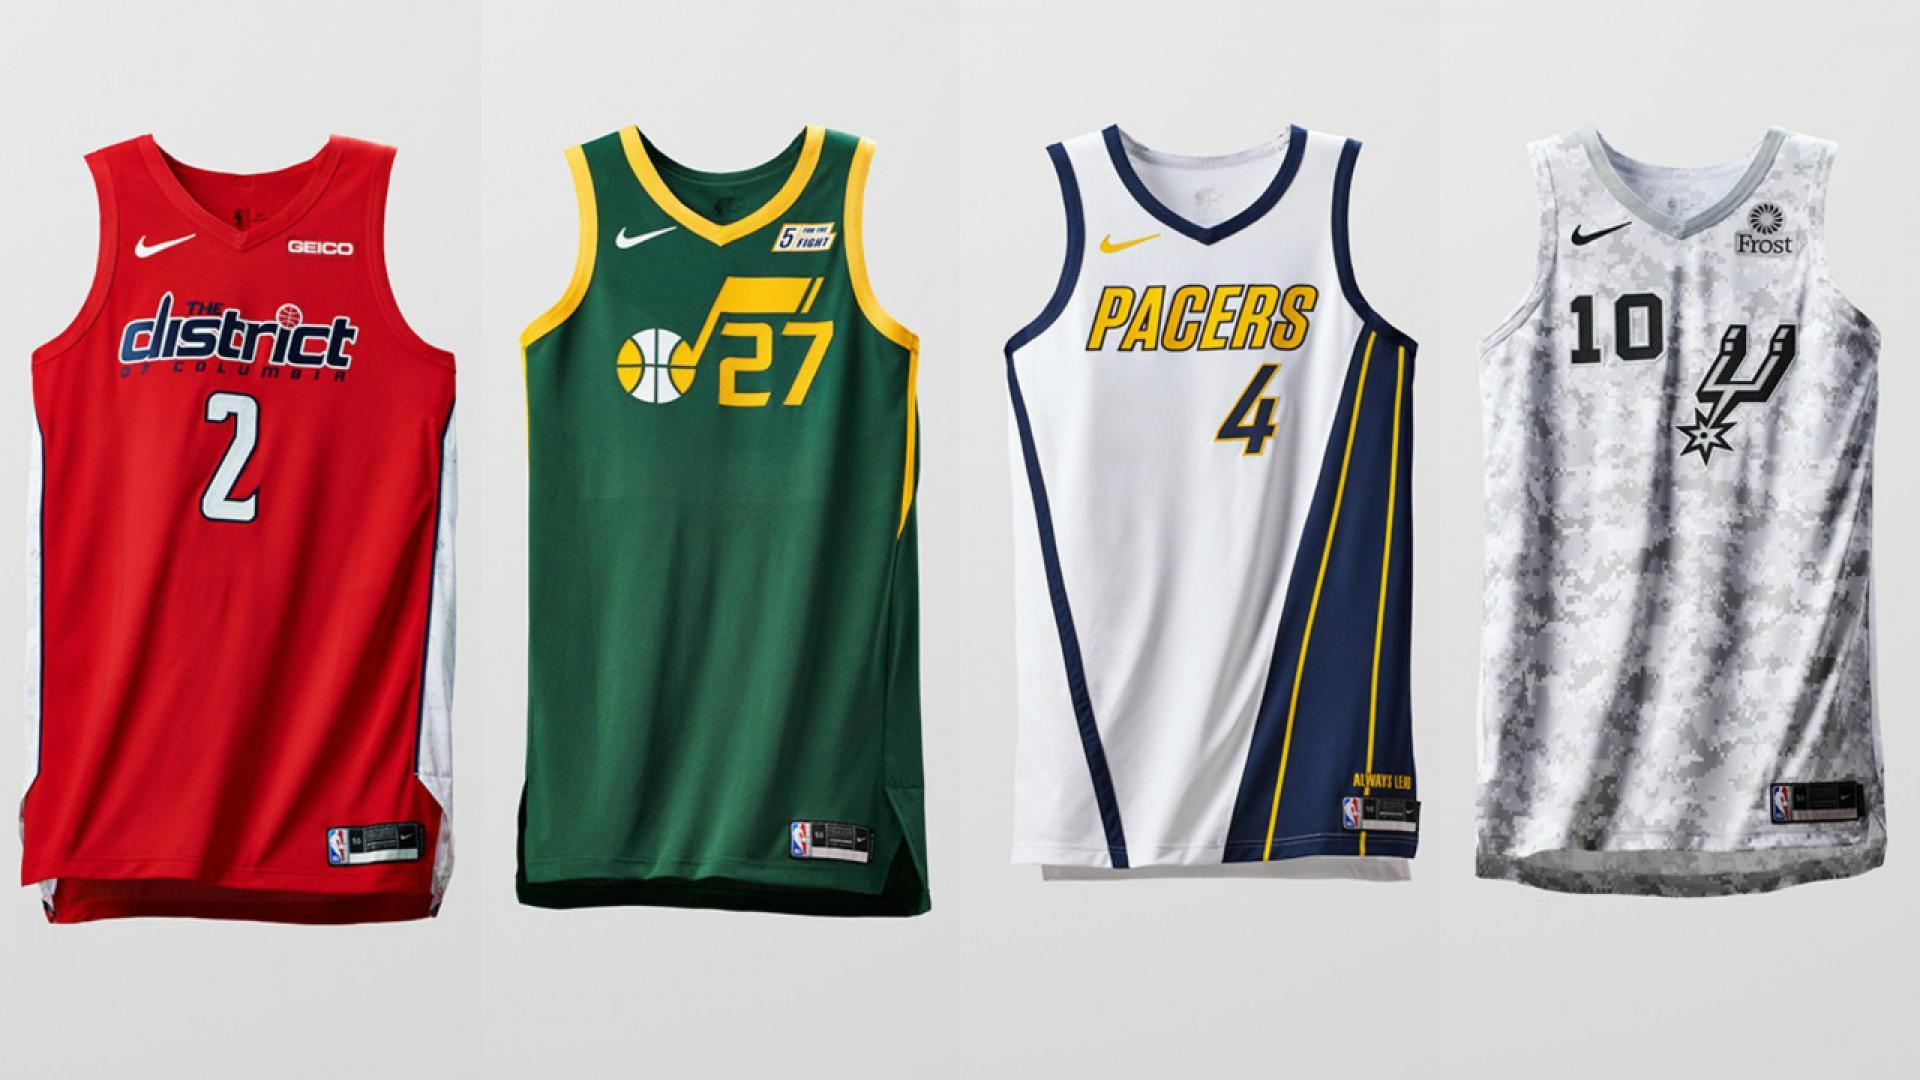 69dacbaf81e8 Teams unveil Earned Edition uniforms for 2018-19 season